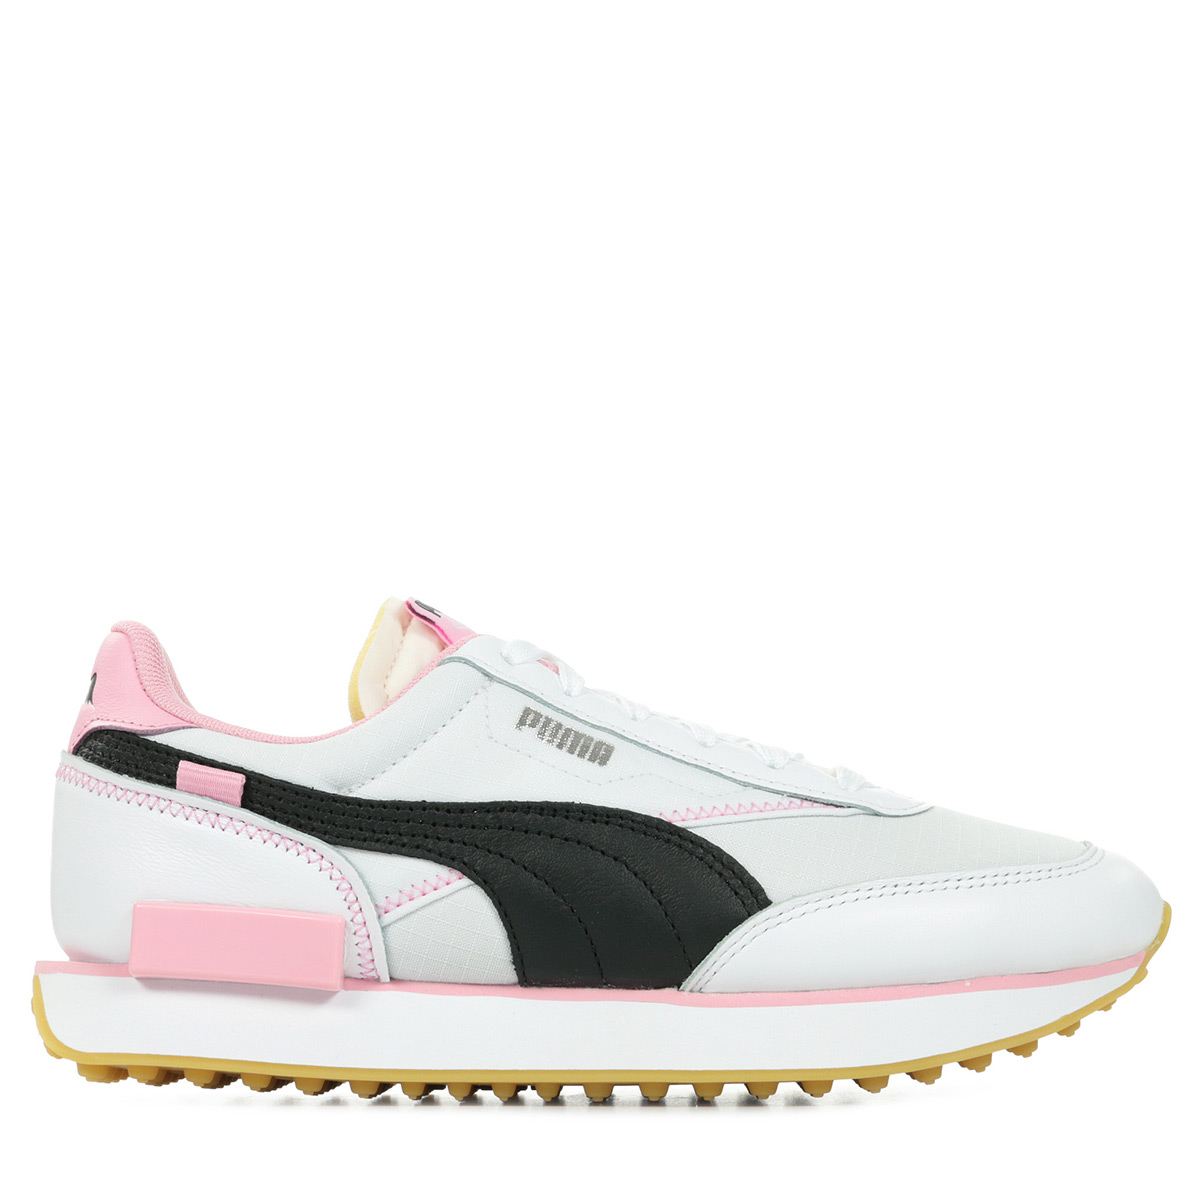 Puma Future Rider Von Dutch Wn's